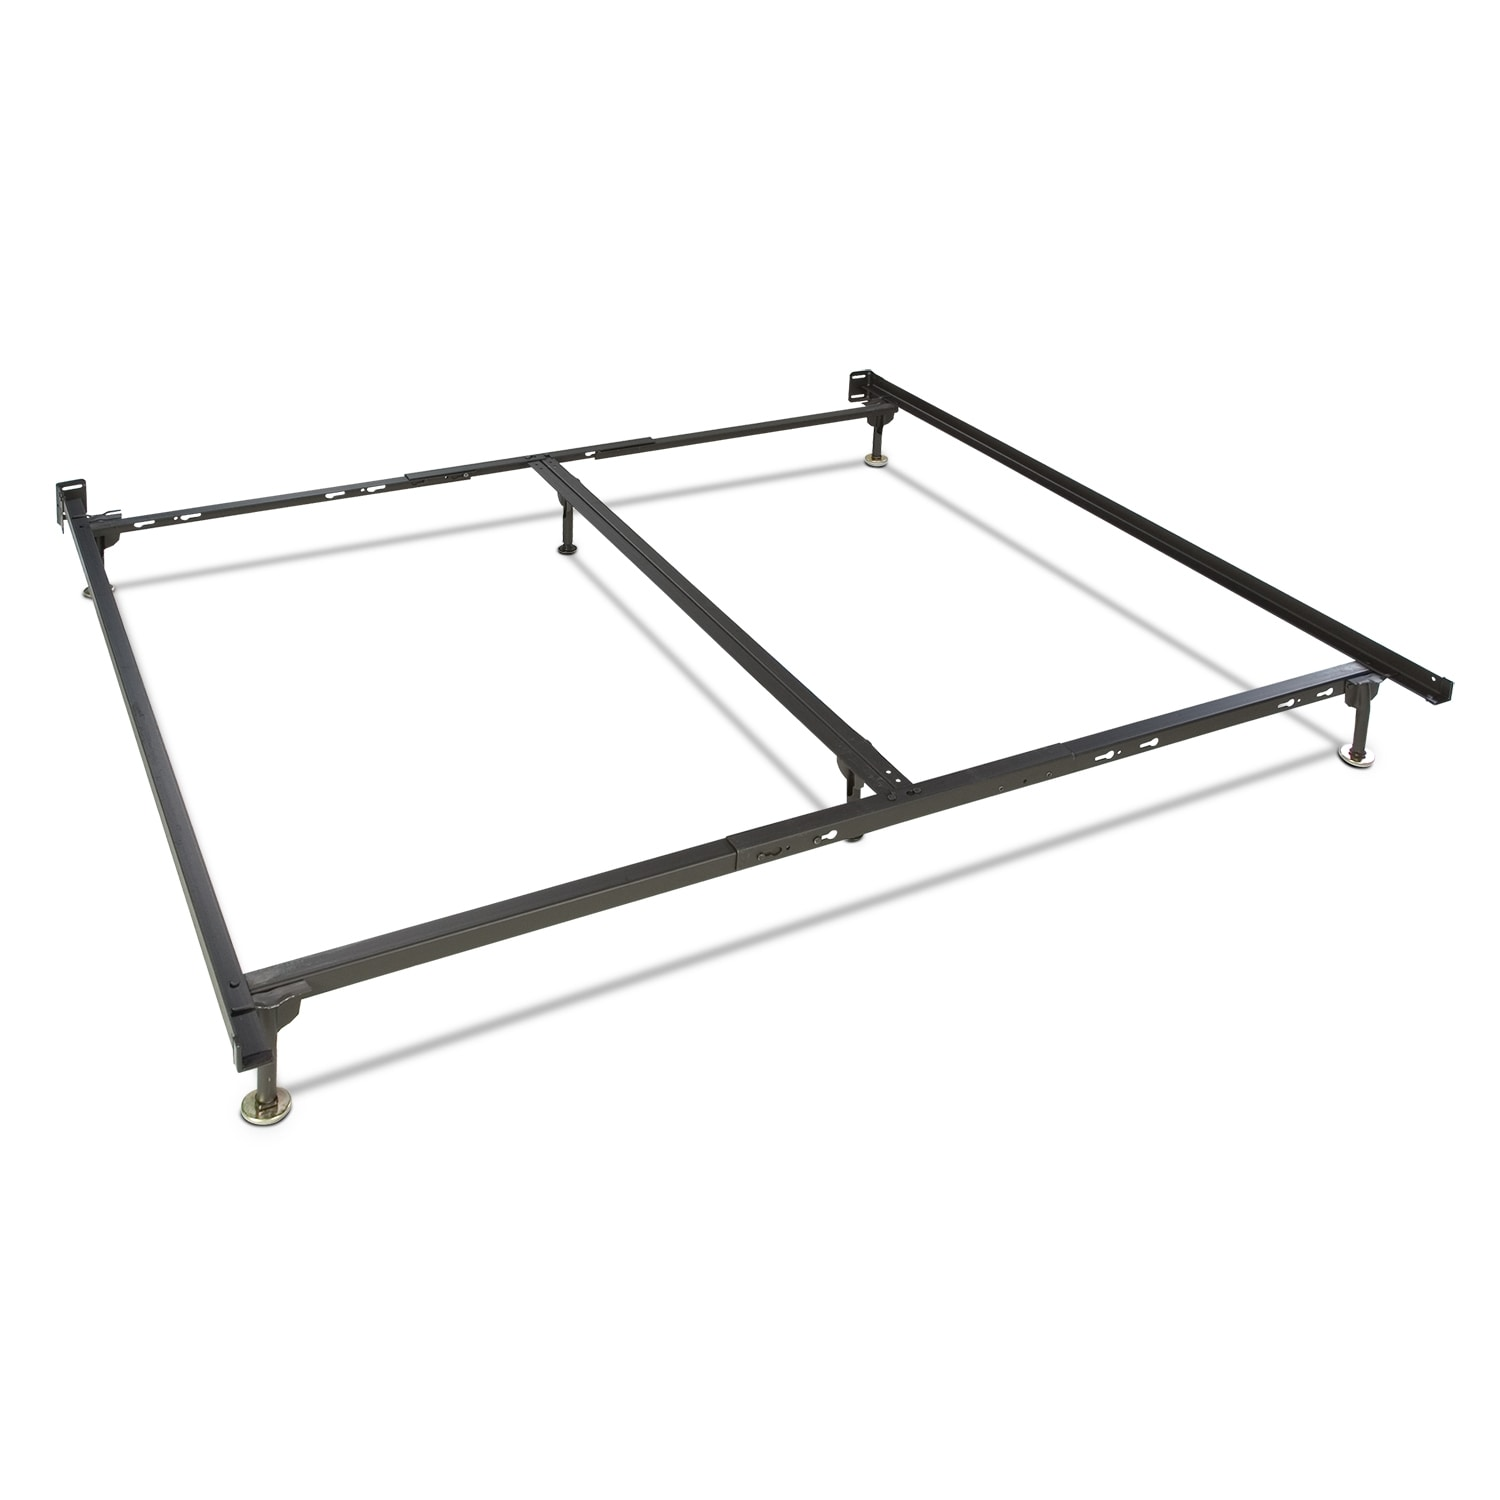 44g king bed frame